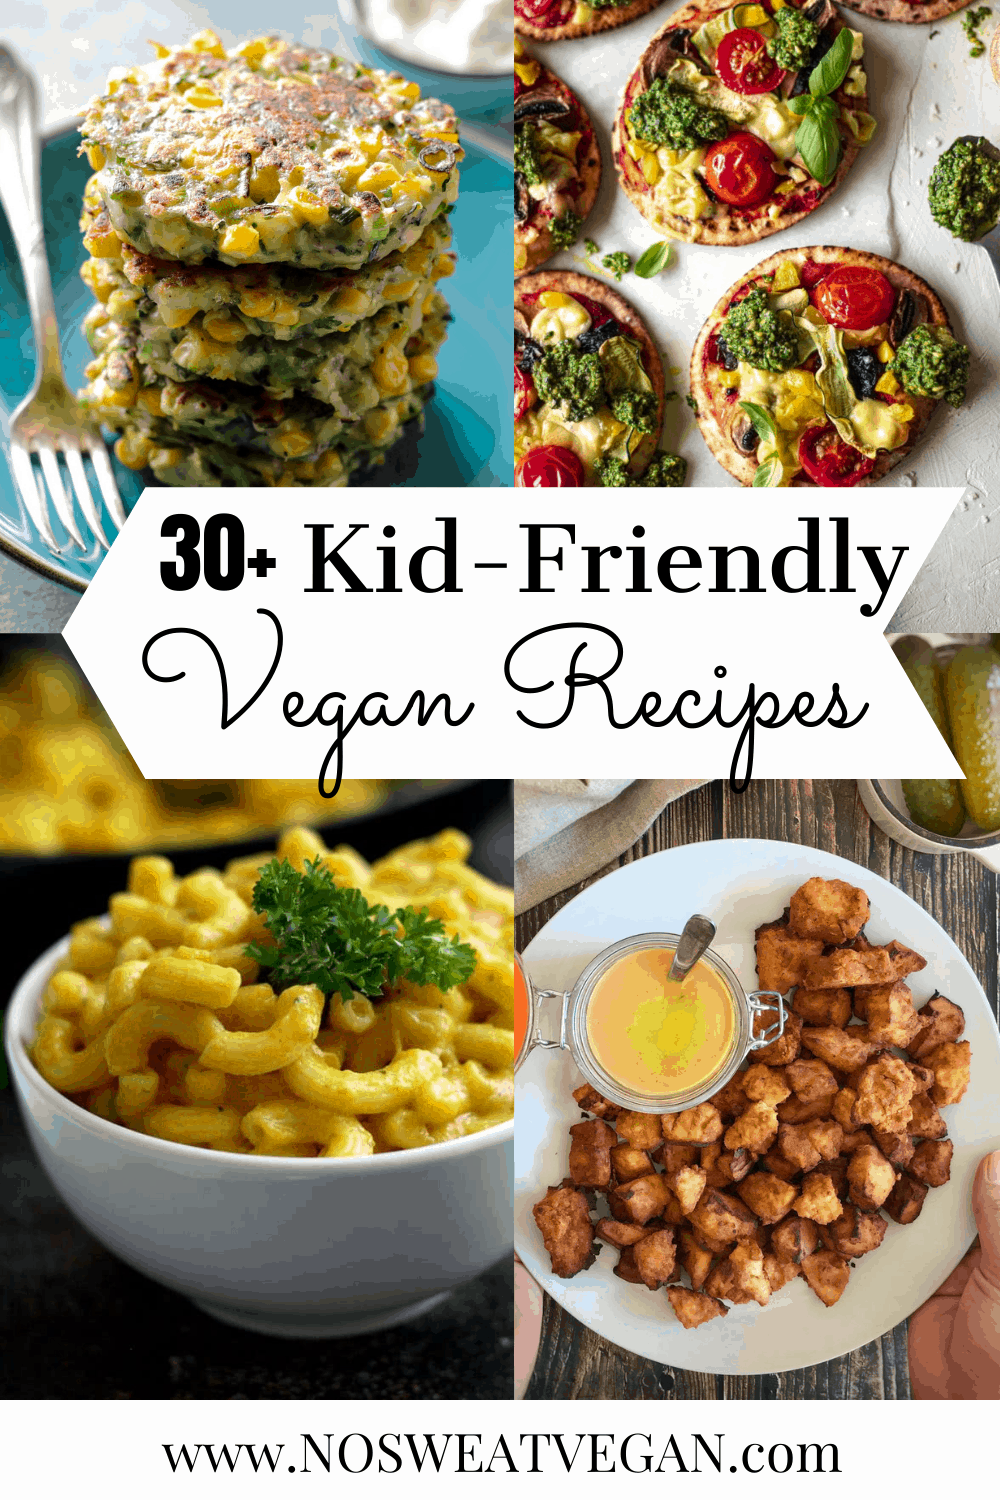 Vegan Recipes for Kids (breakfast, lunch, dinner, and snacks)